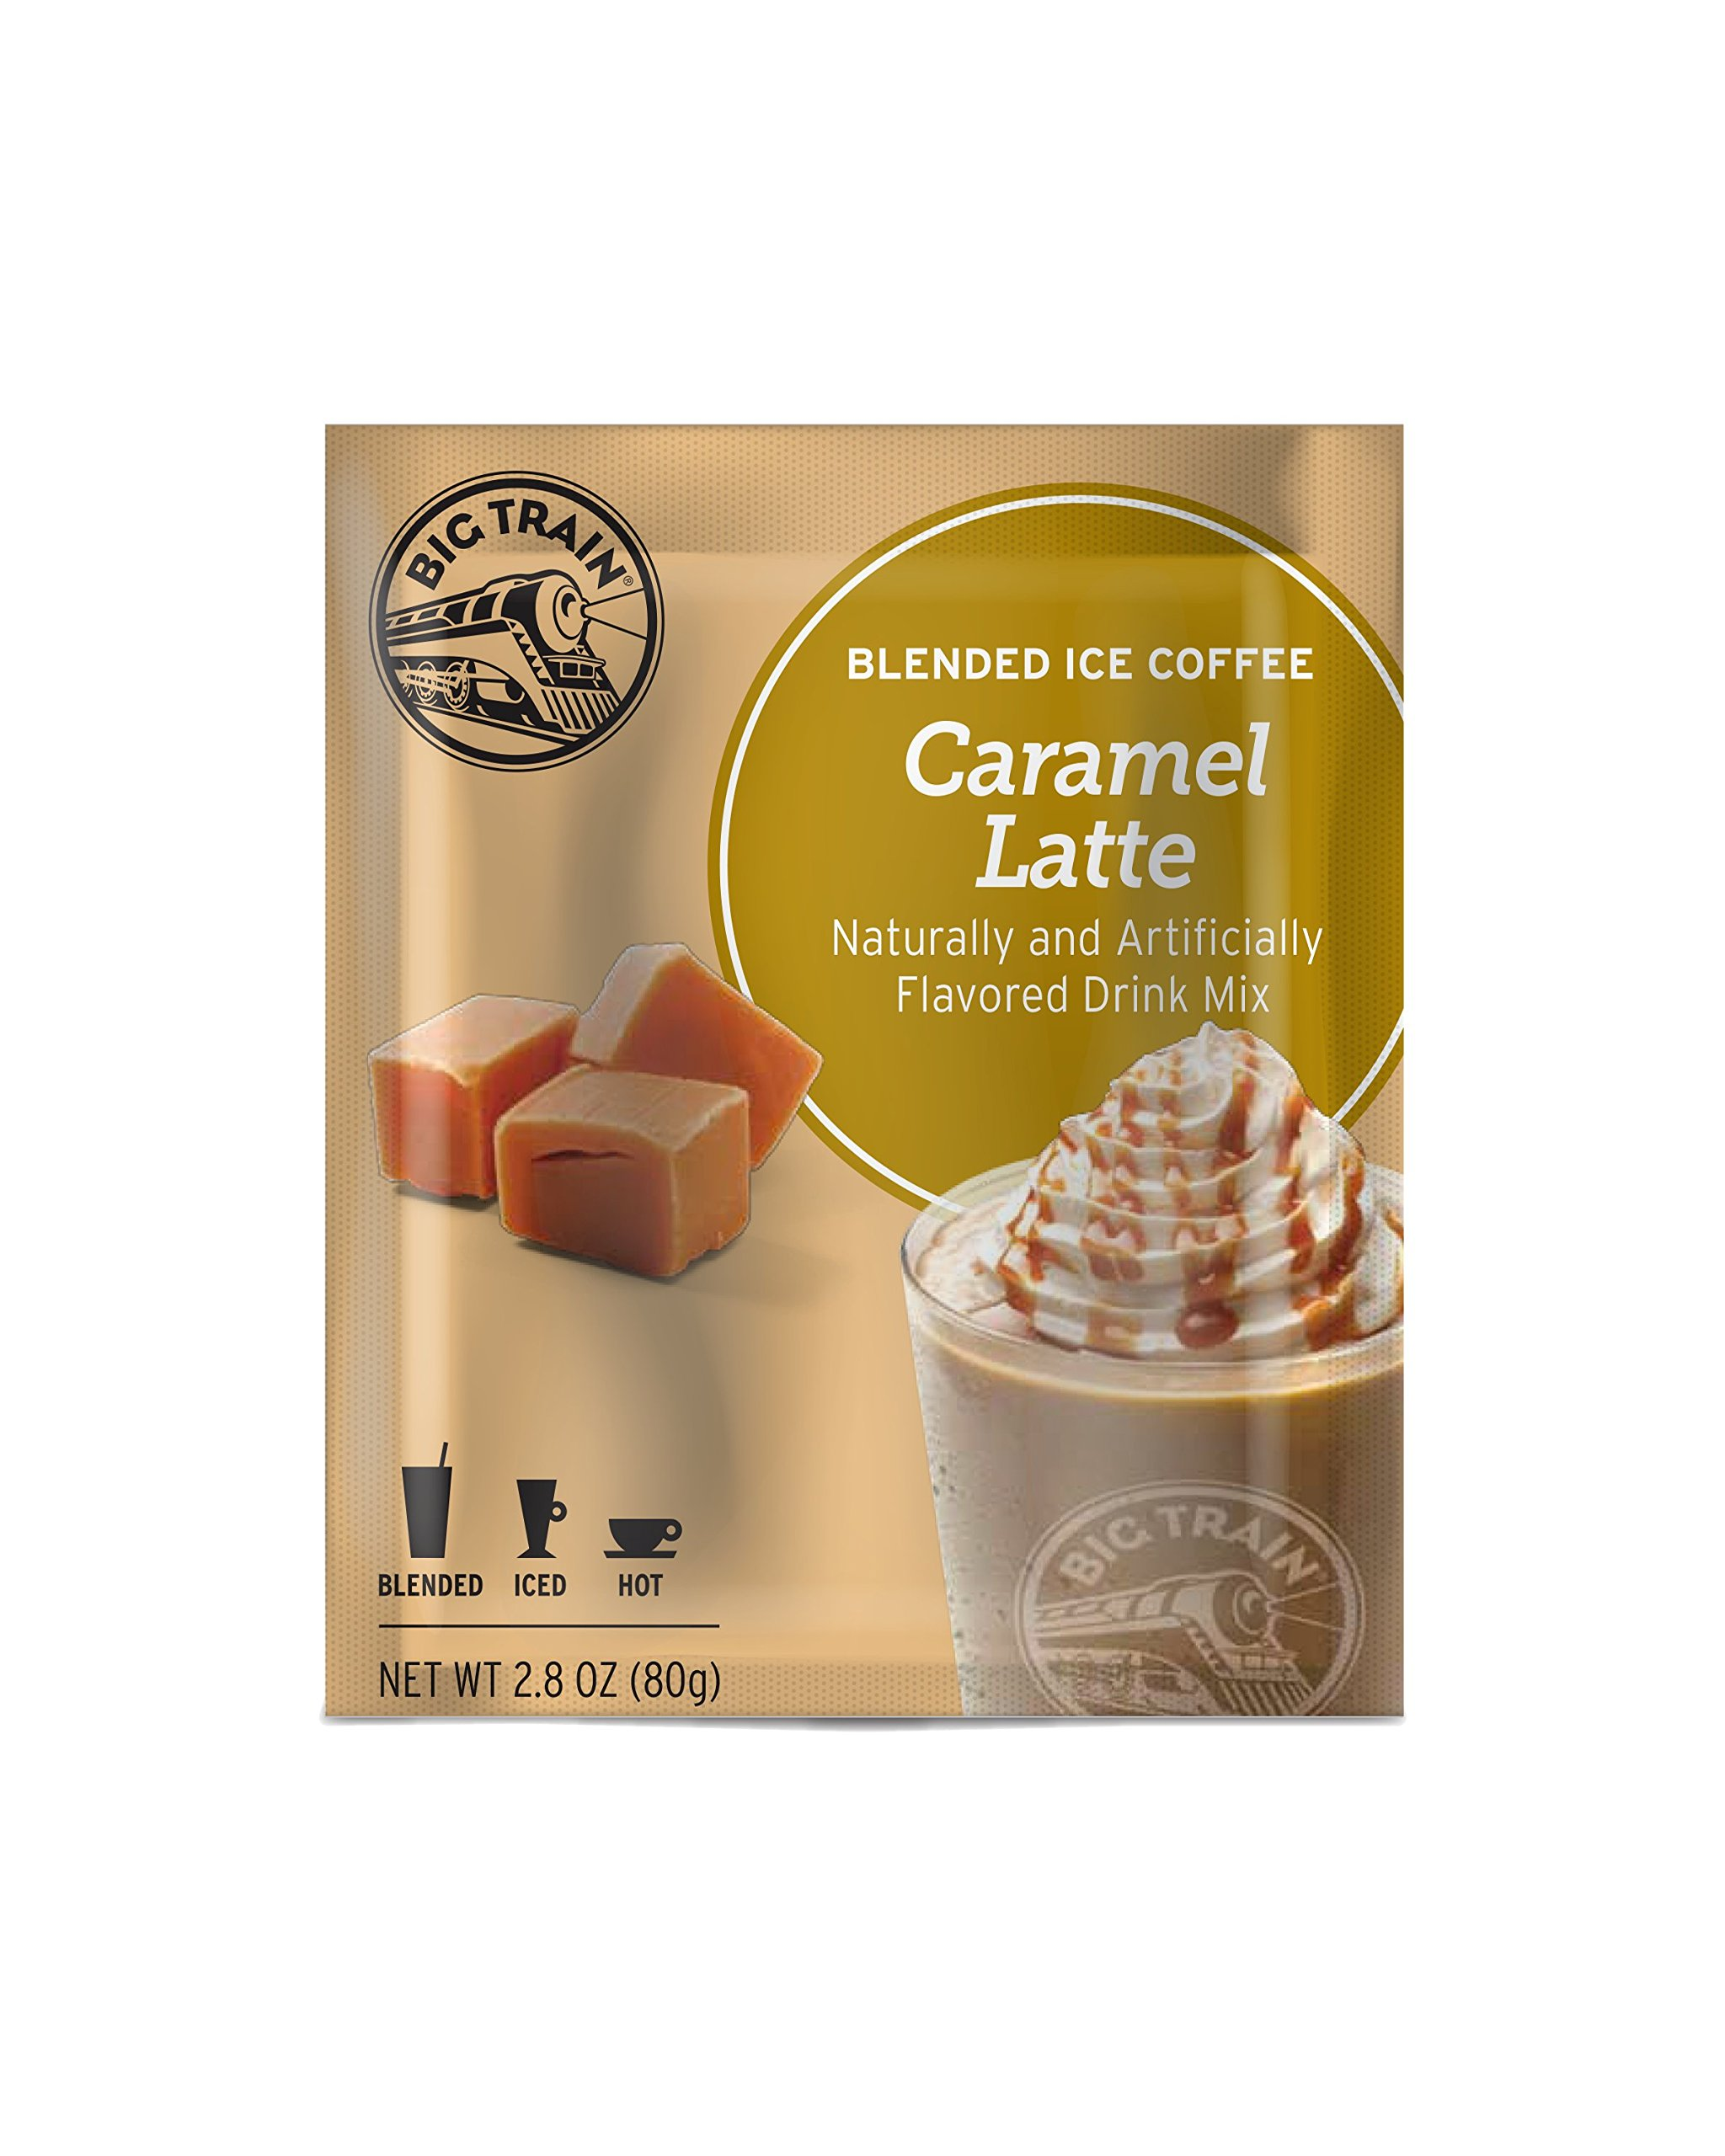 Big Train Blended Ice Coffee, Caramel Latte, 2.8-Ounce Bags (Pack of 25)